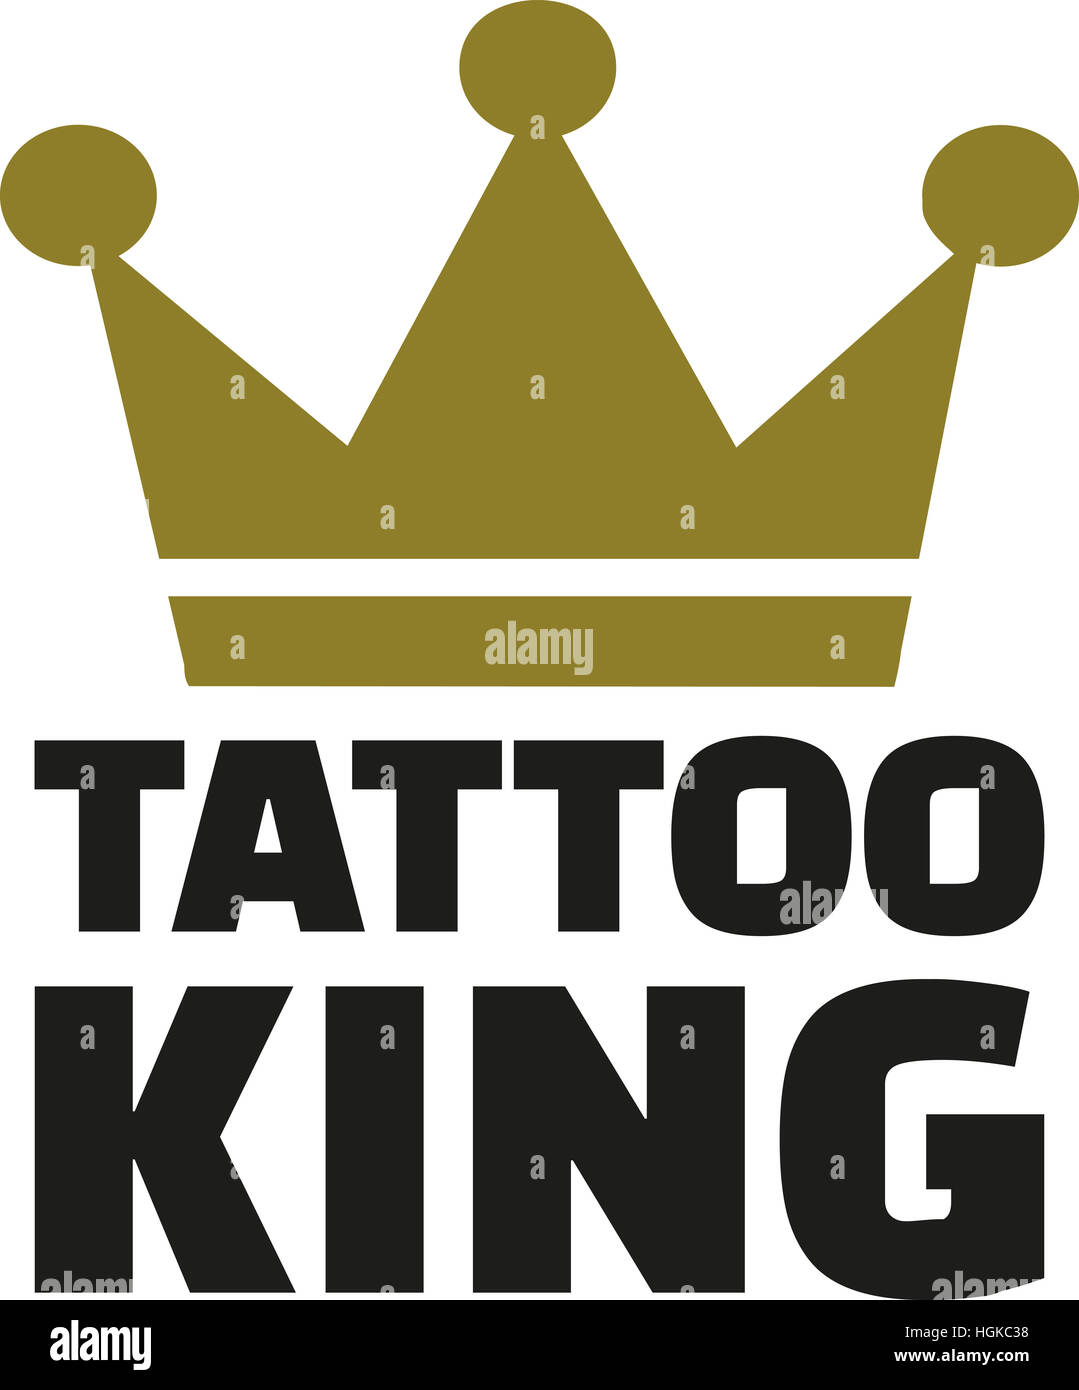 King Tattoo Photos King Tattoo Images Alamy